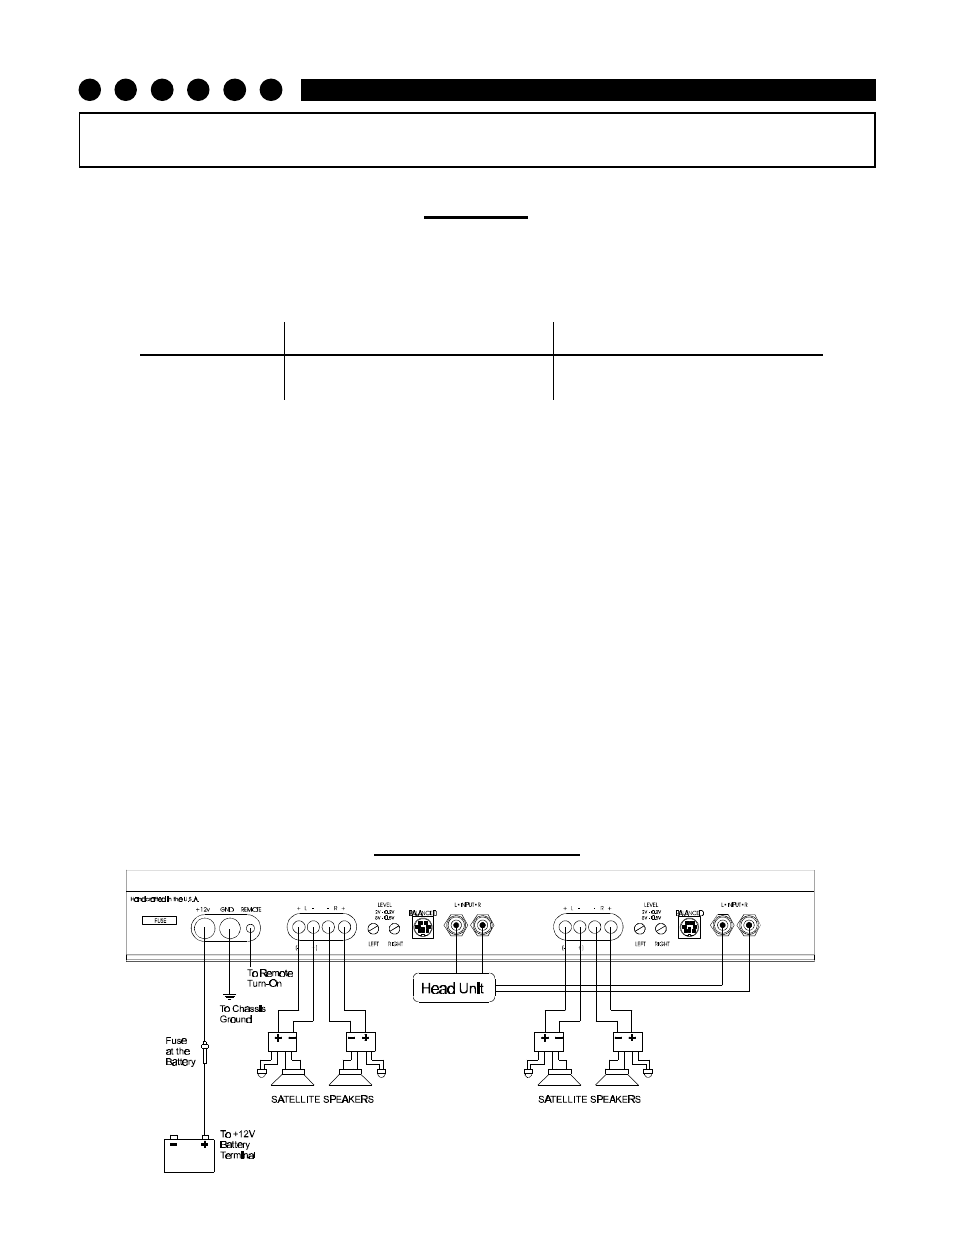 Installation Step 3 Wiring Diagram Soundstream 40 Amp Breaker Technologies Picasso Stereo Amplifier User Manual Page 10 20